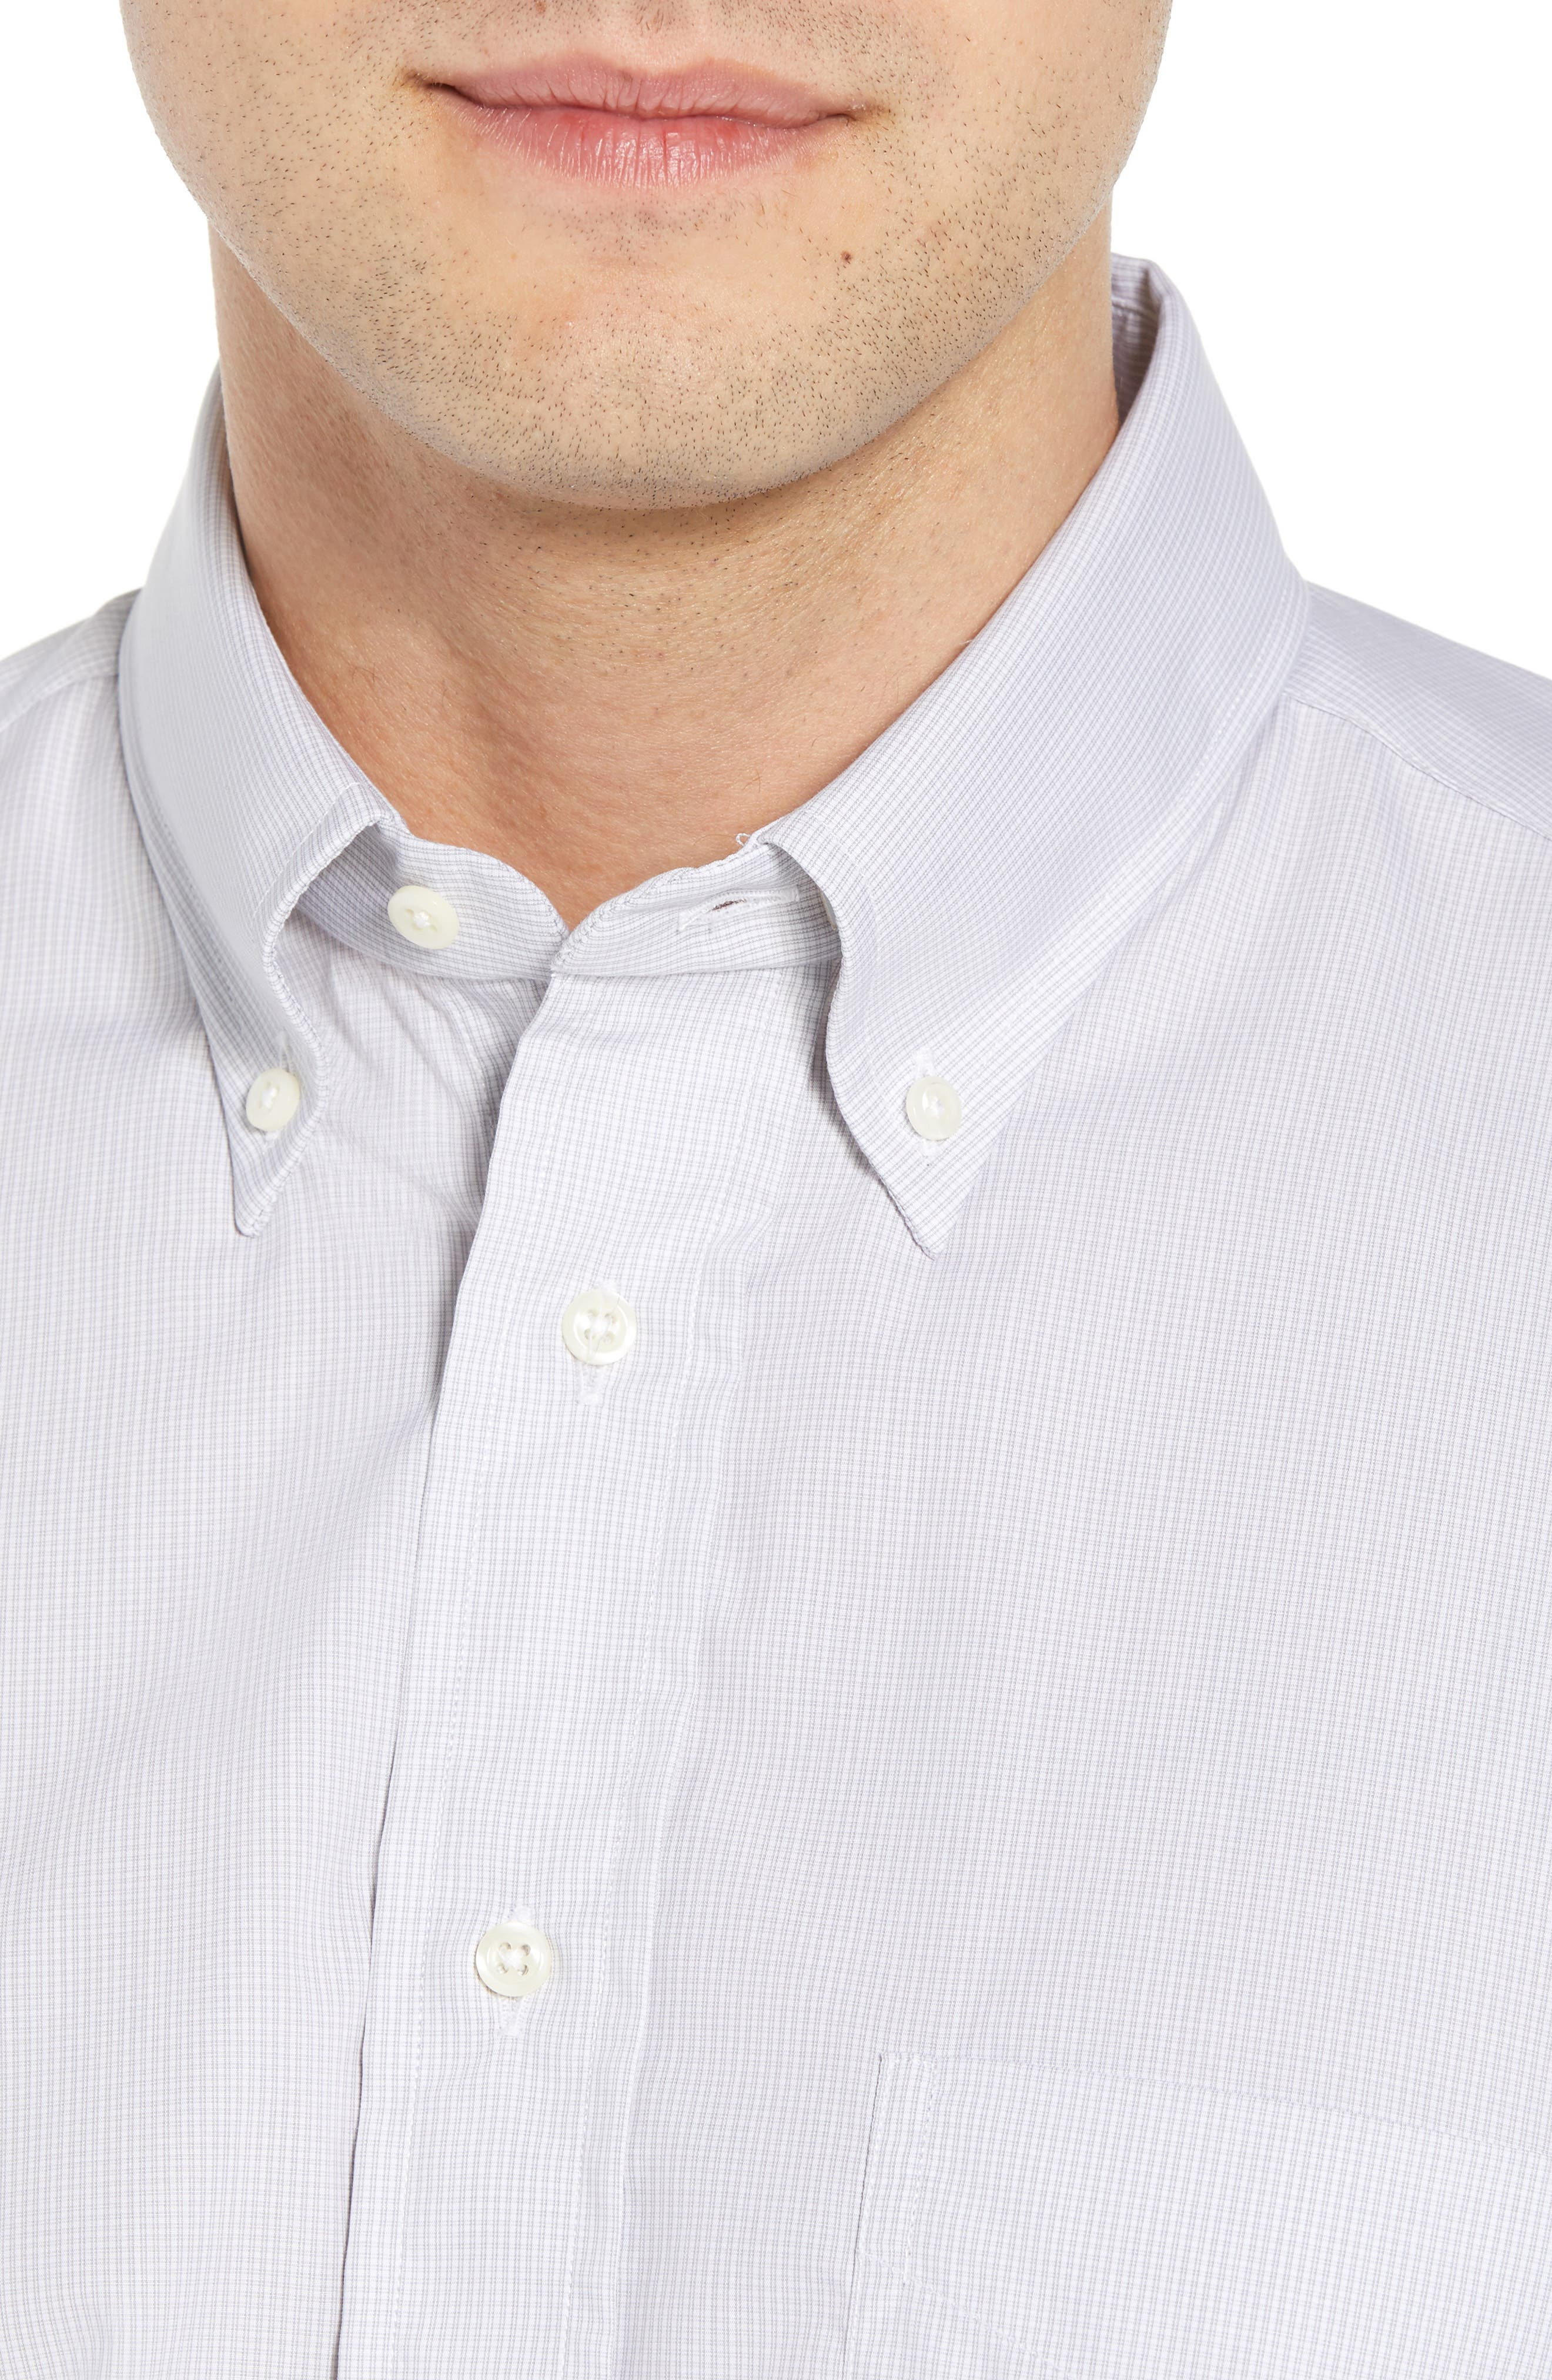 Tailored Fit Check Dress Shirt,                             Alternate thumbnail 2, color,                             Charcoal